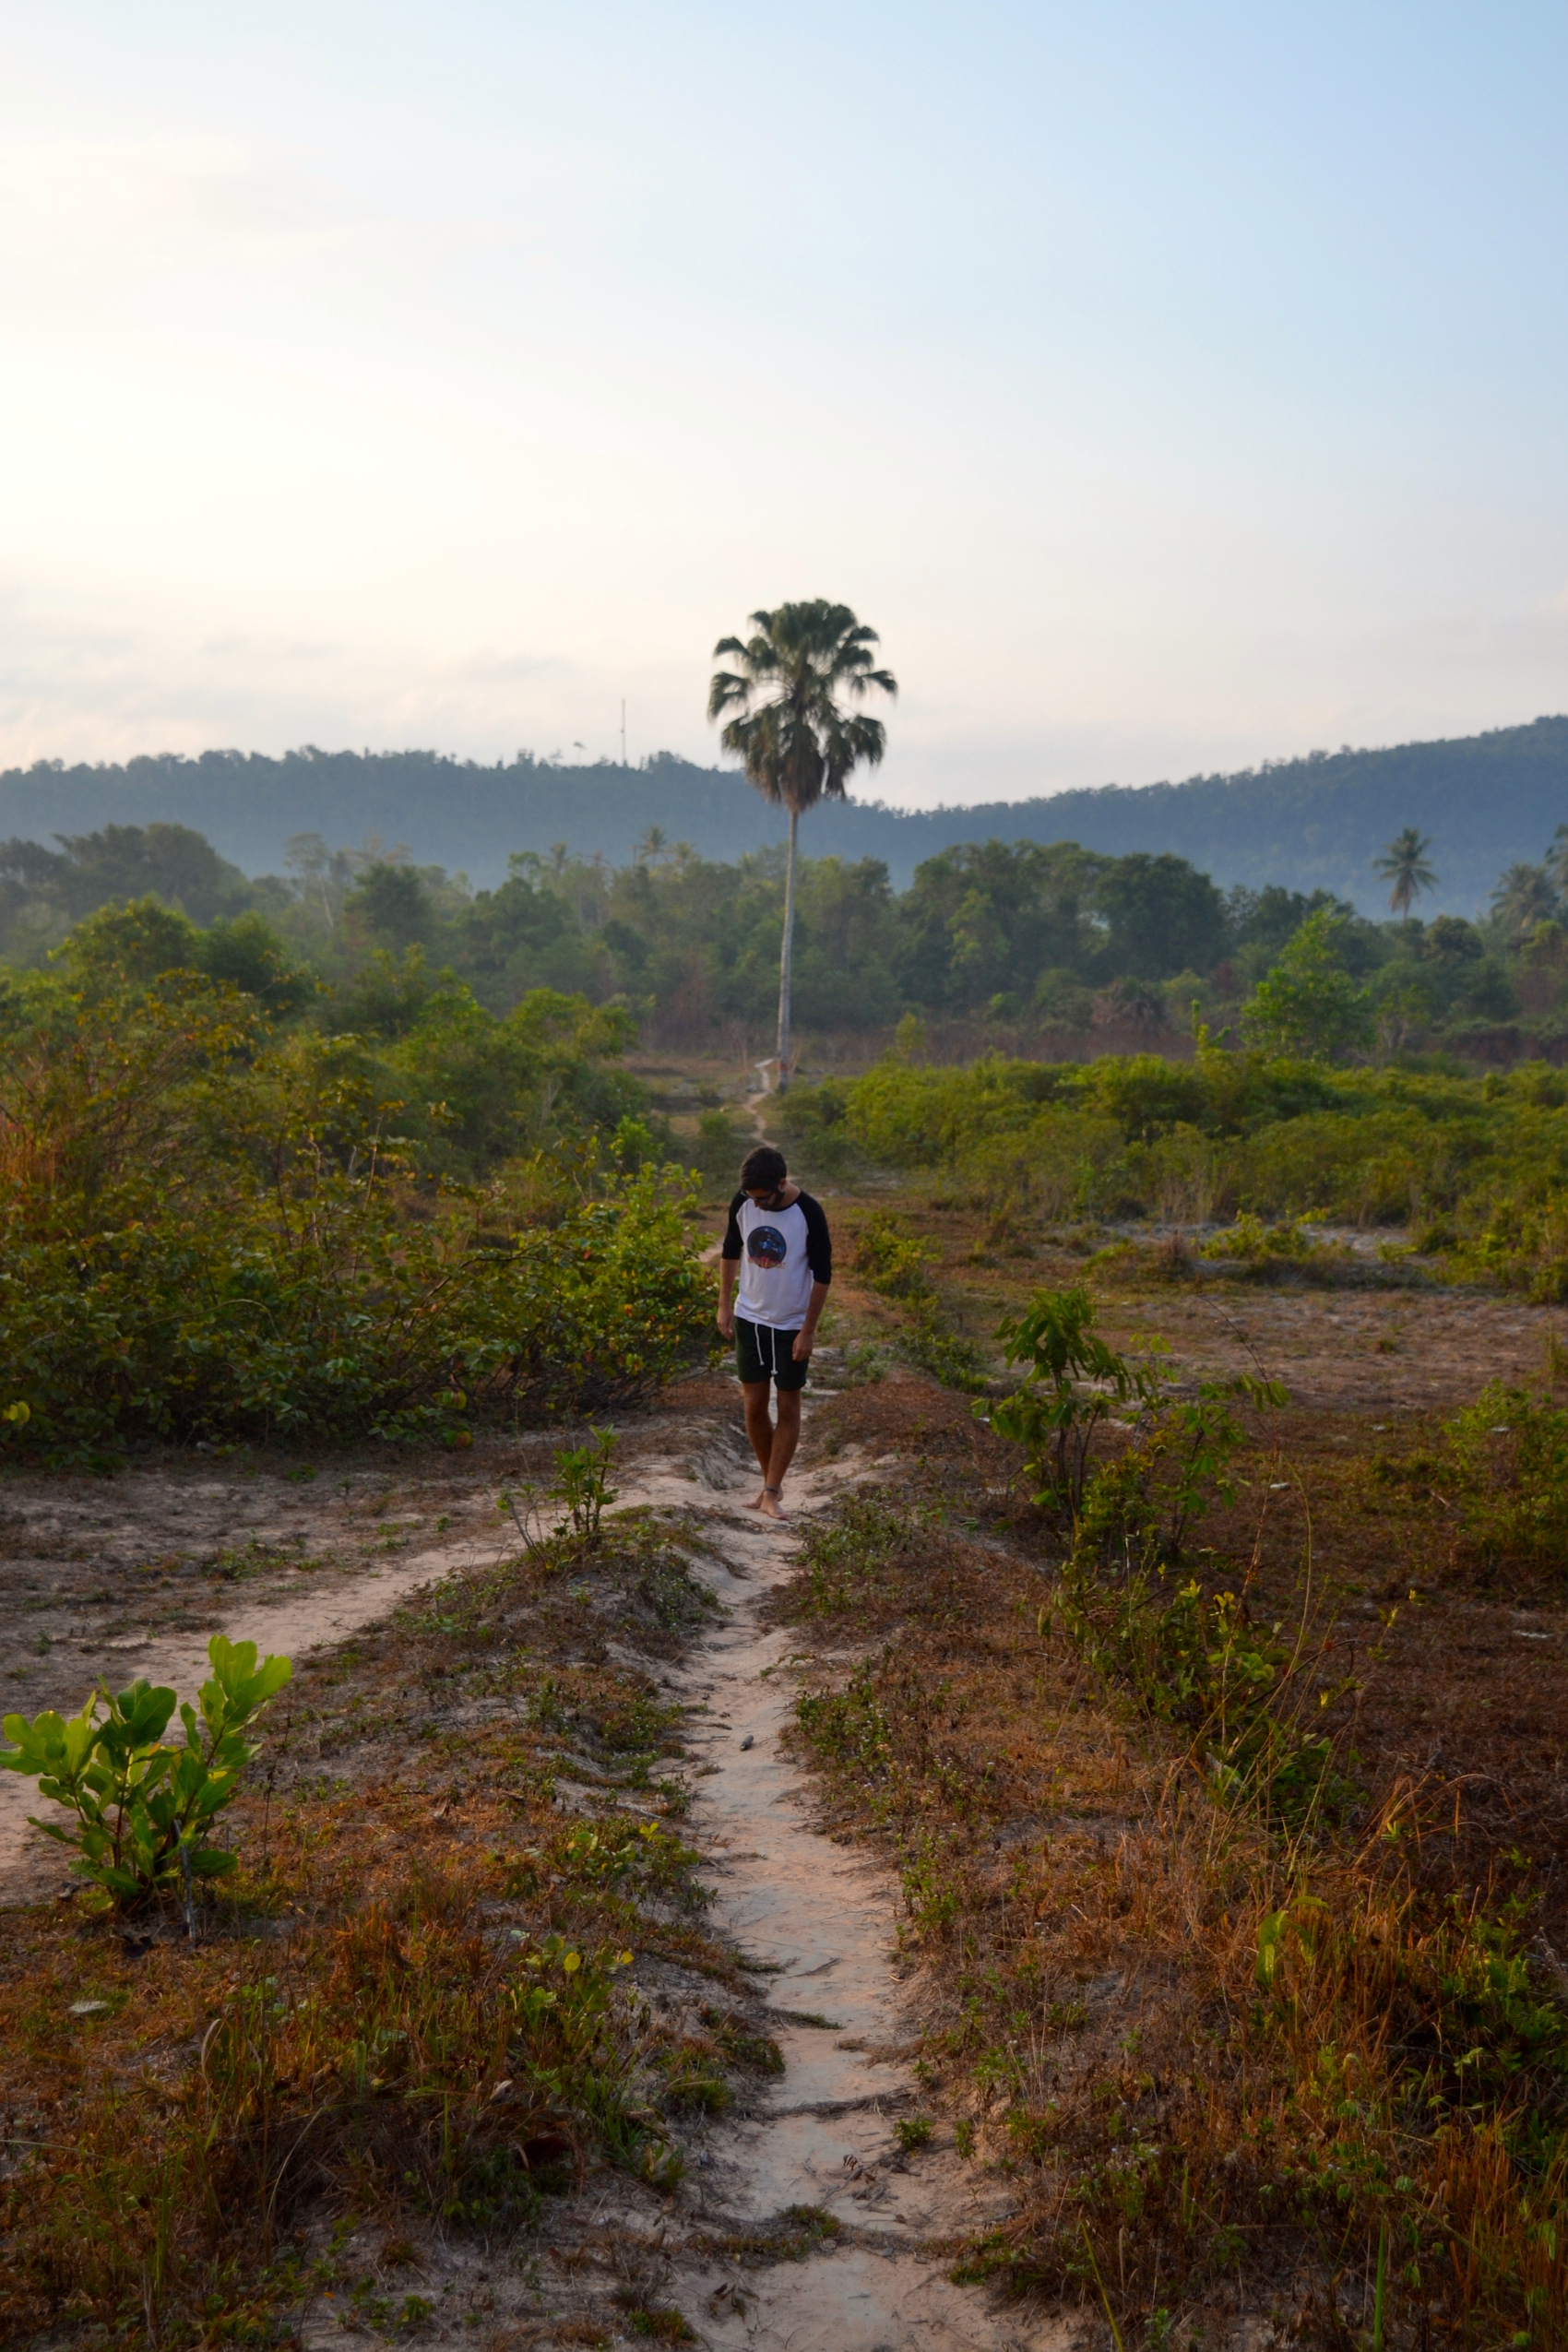 Walking through the jungle to the nearby village